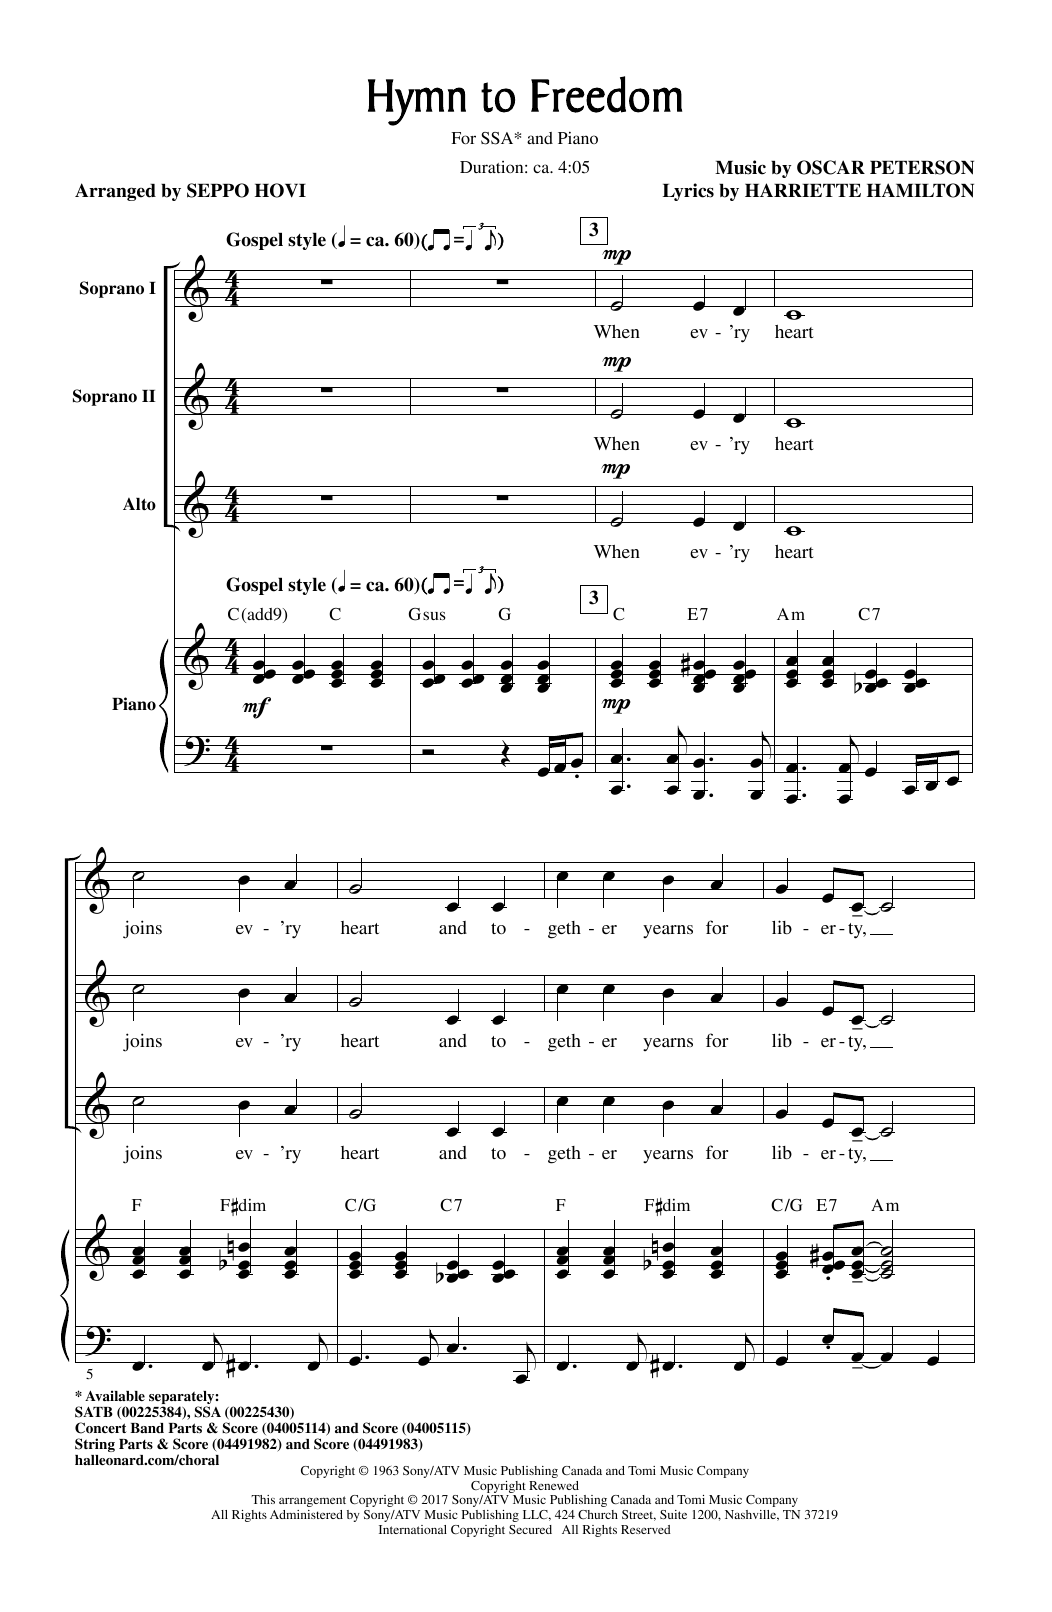 Hymn To Freedom Sheet Music To Download